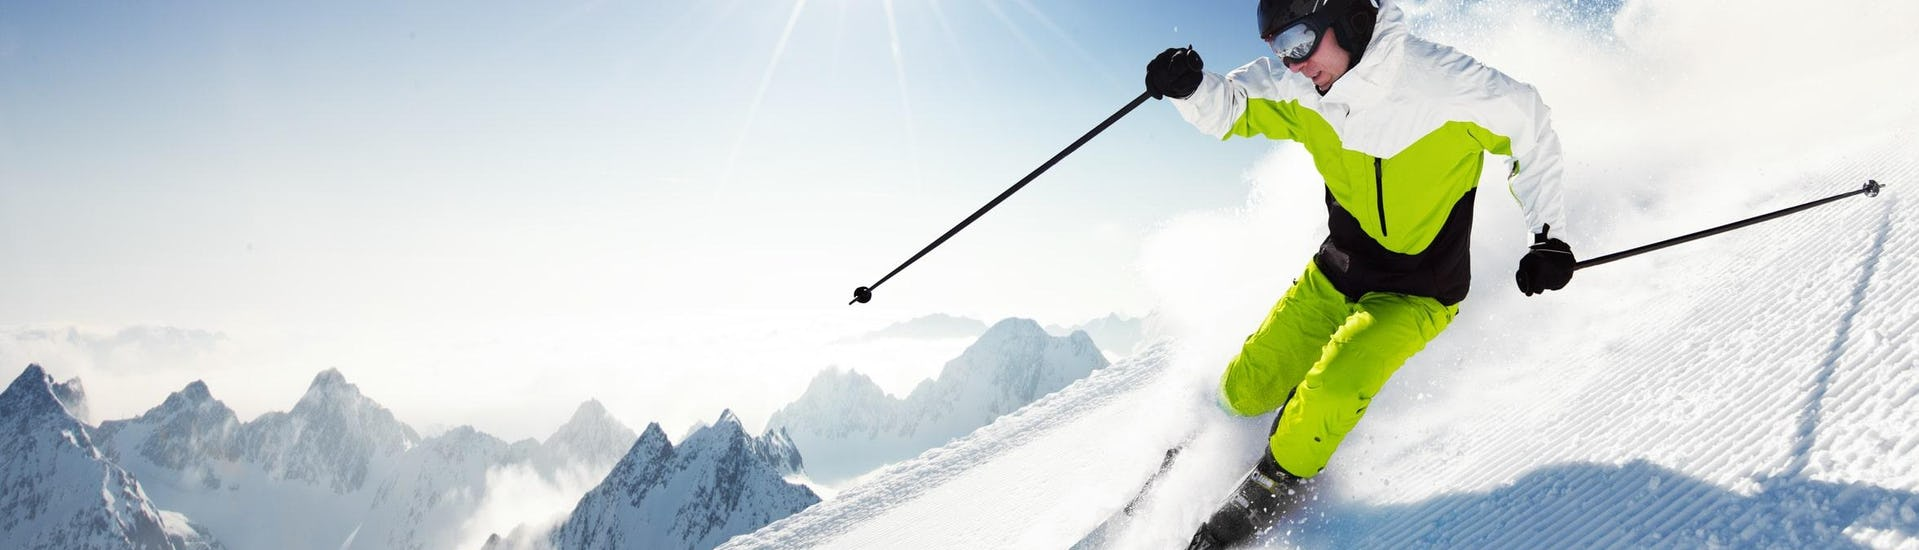 Ski Instructor Private for Adults - With Experience